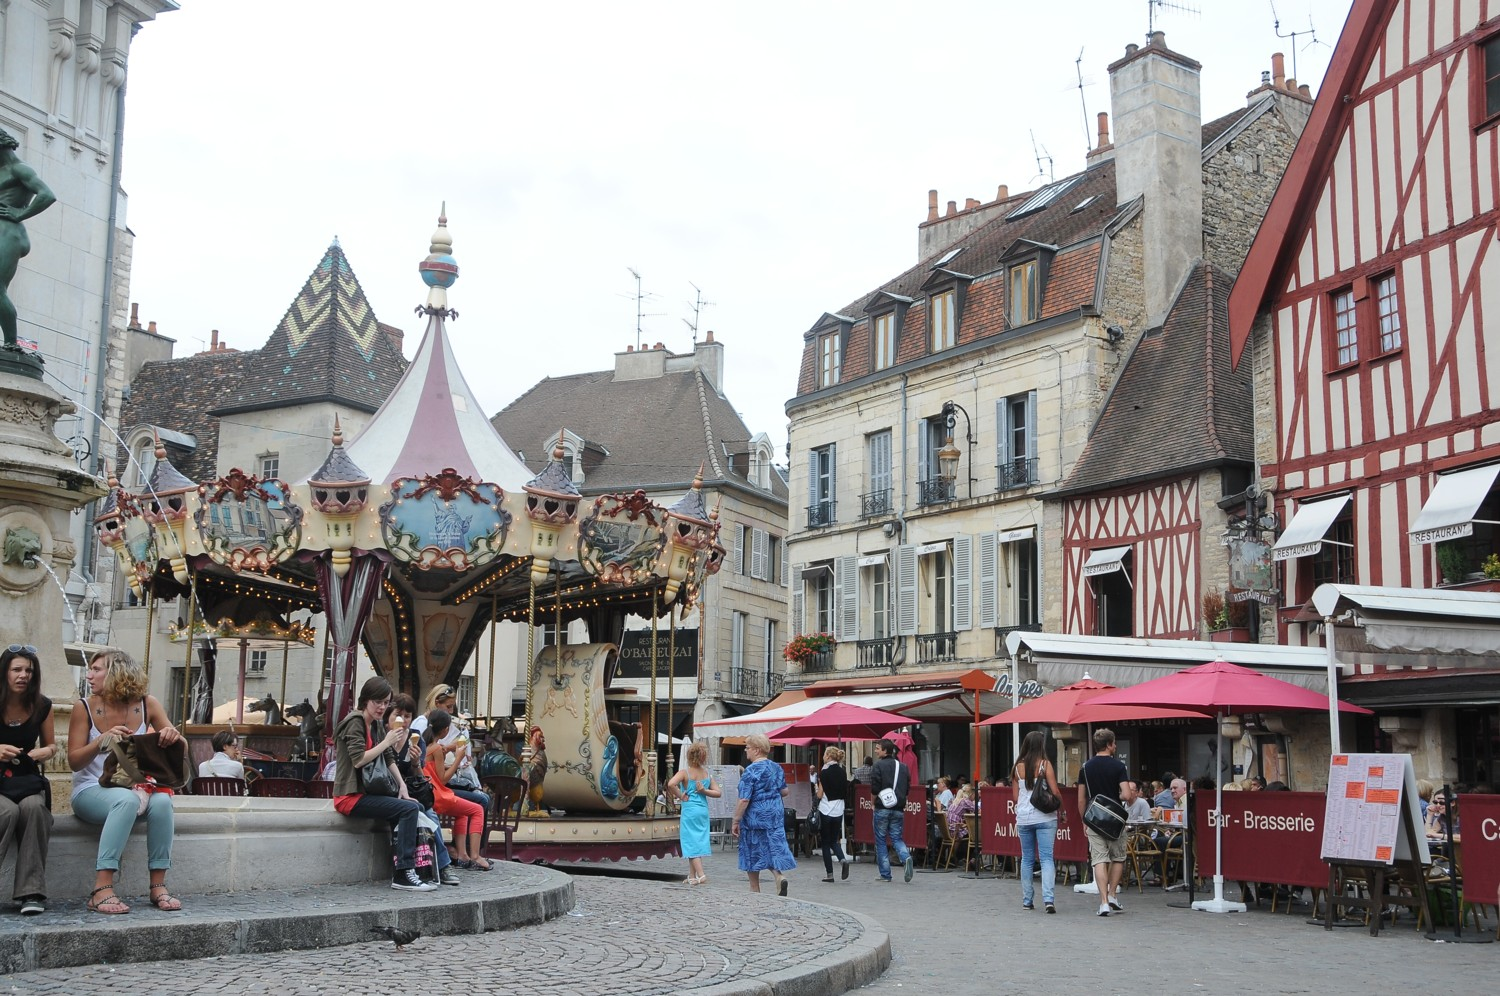 Barging through Burgundy, Day 5-6: Walking Tour of Dijon's Old City